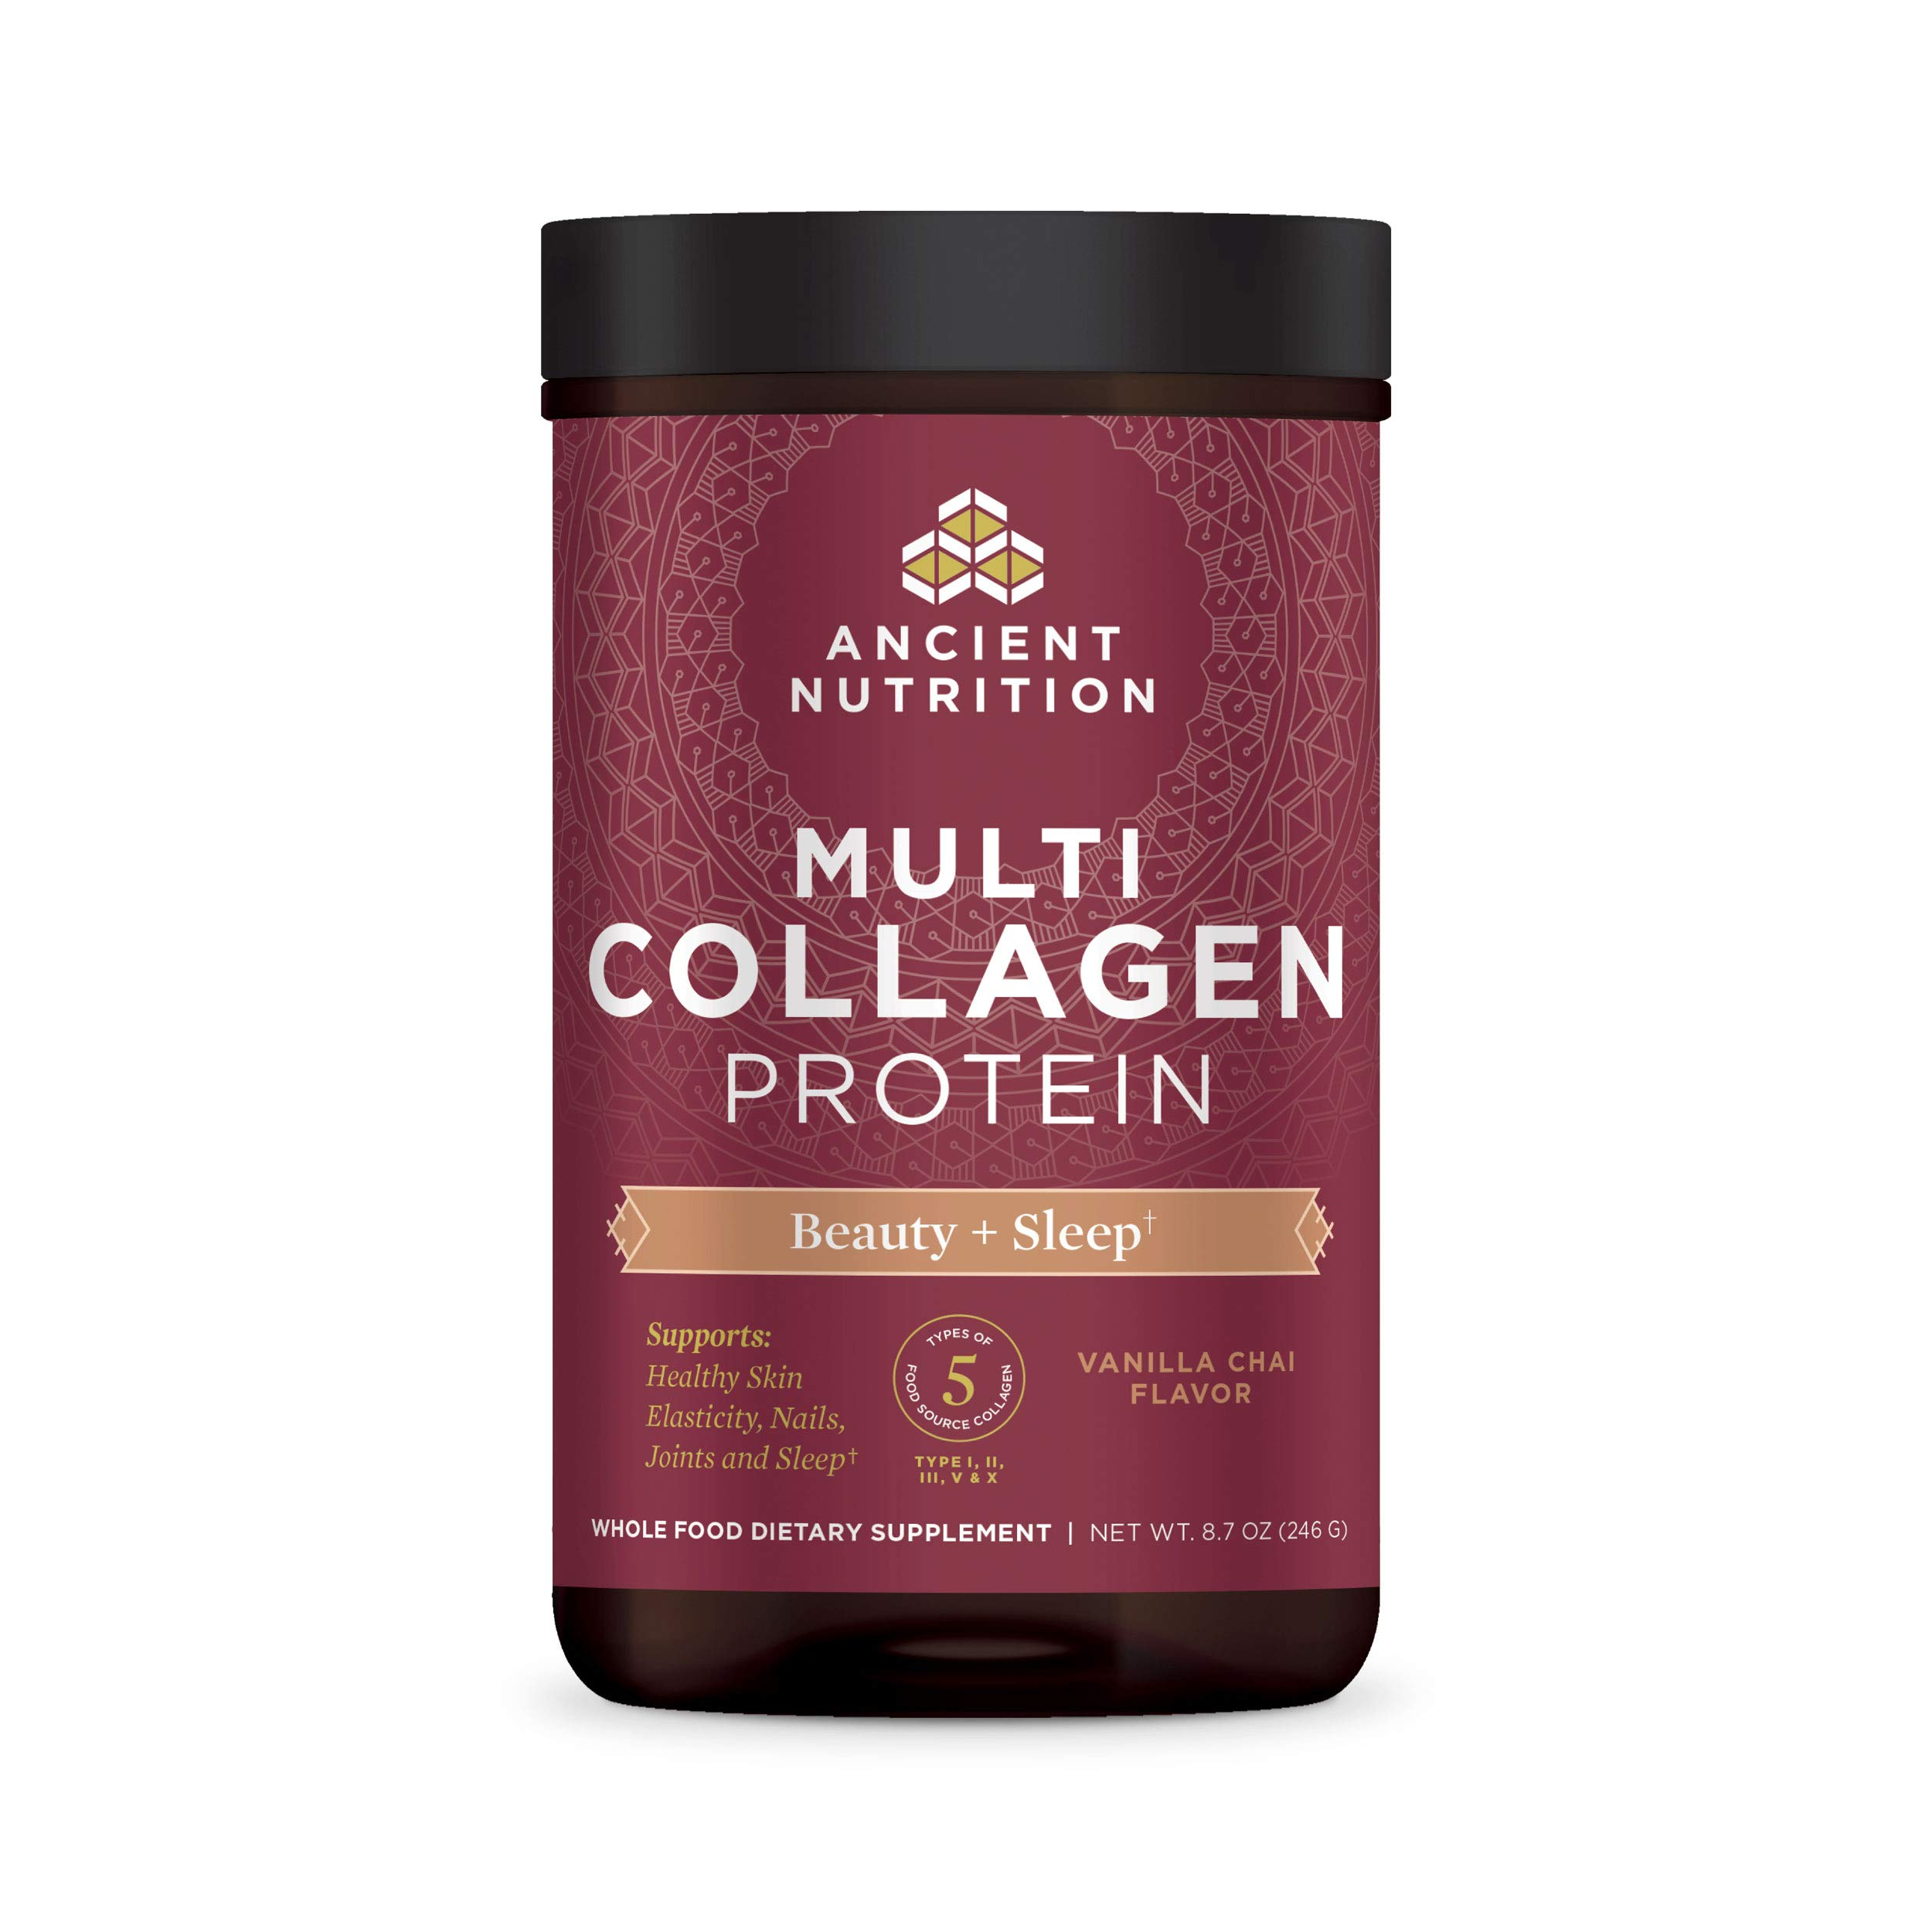 Ancient Nutrition Multi Collagen Protein Powder Beauty + Sleep, Vanilla Chai, Formulated by Dr. Josh Axe, Collagen Supplement Promotes Restful Sleep & Supports Hair, Skin, Nails, Joints & Gut, 8.7oz